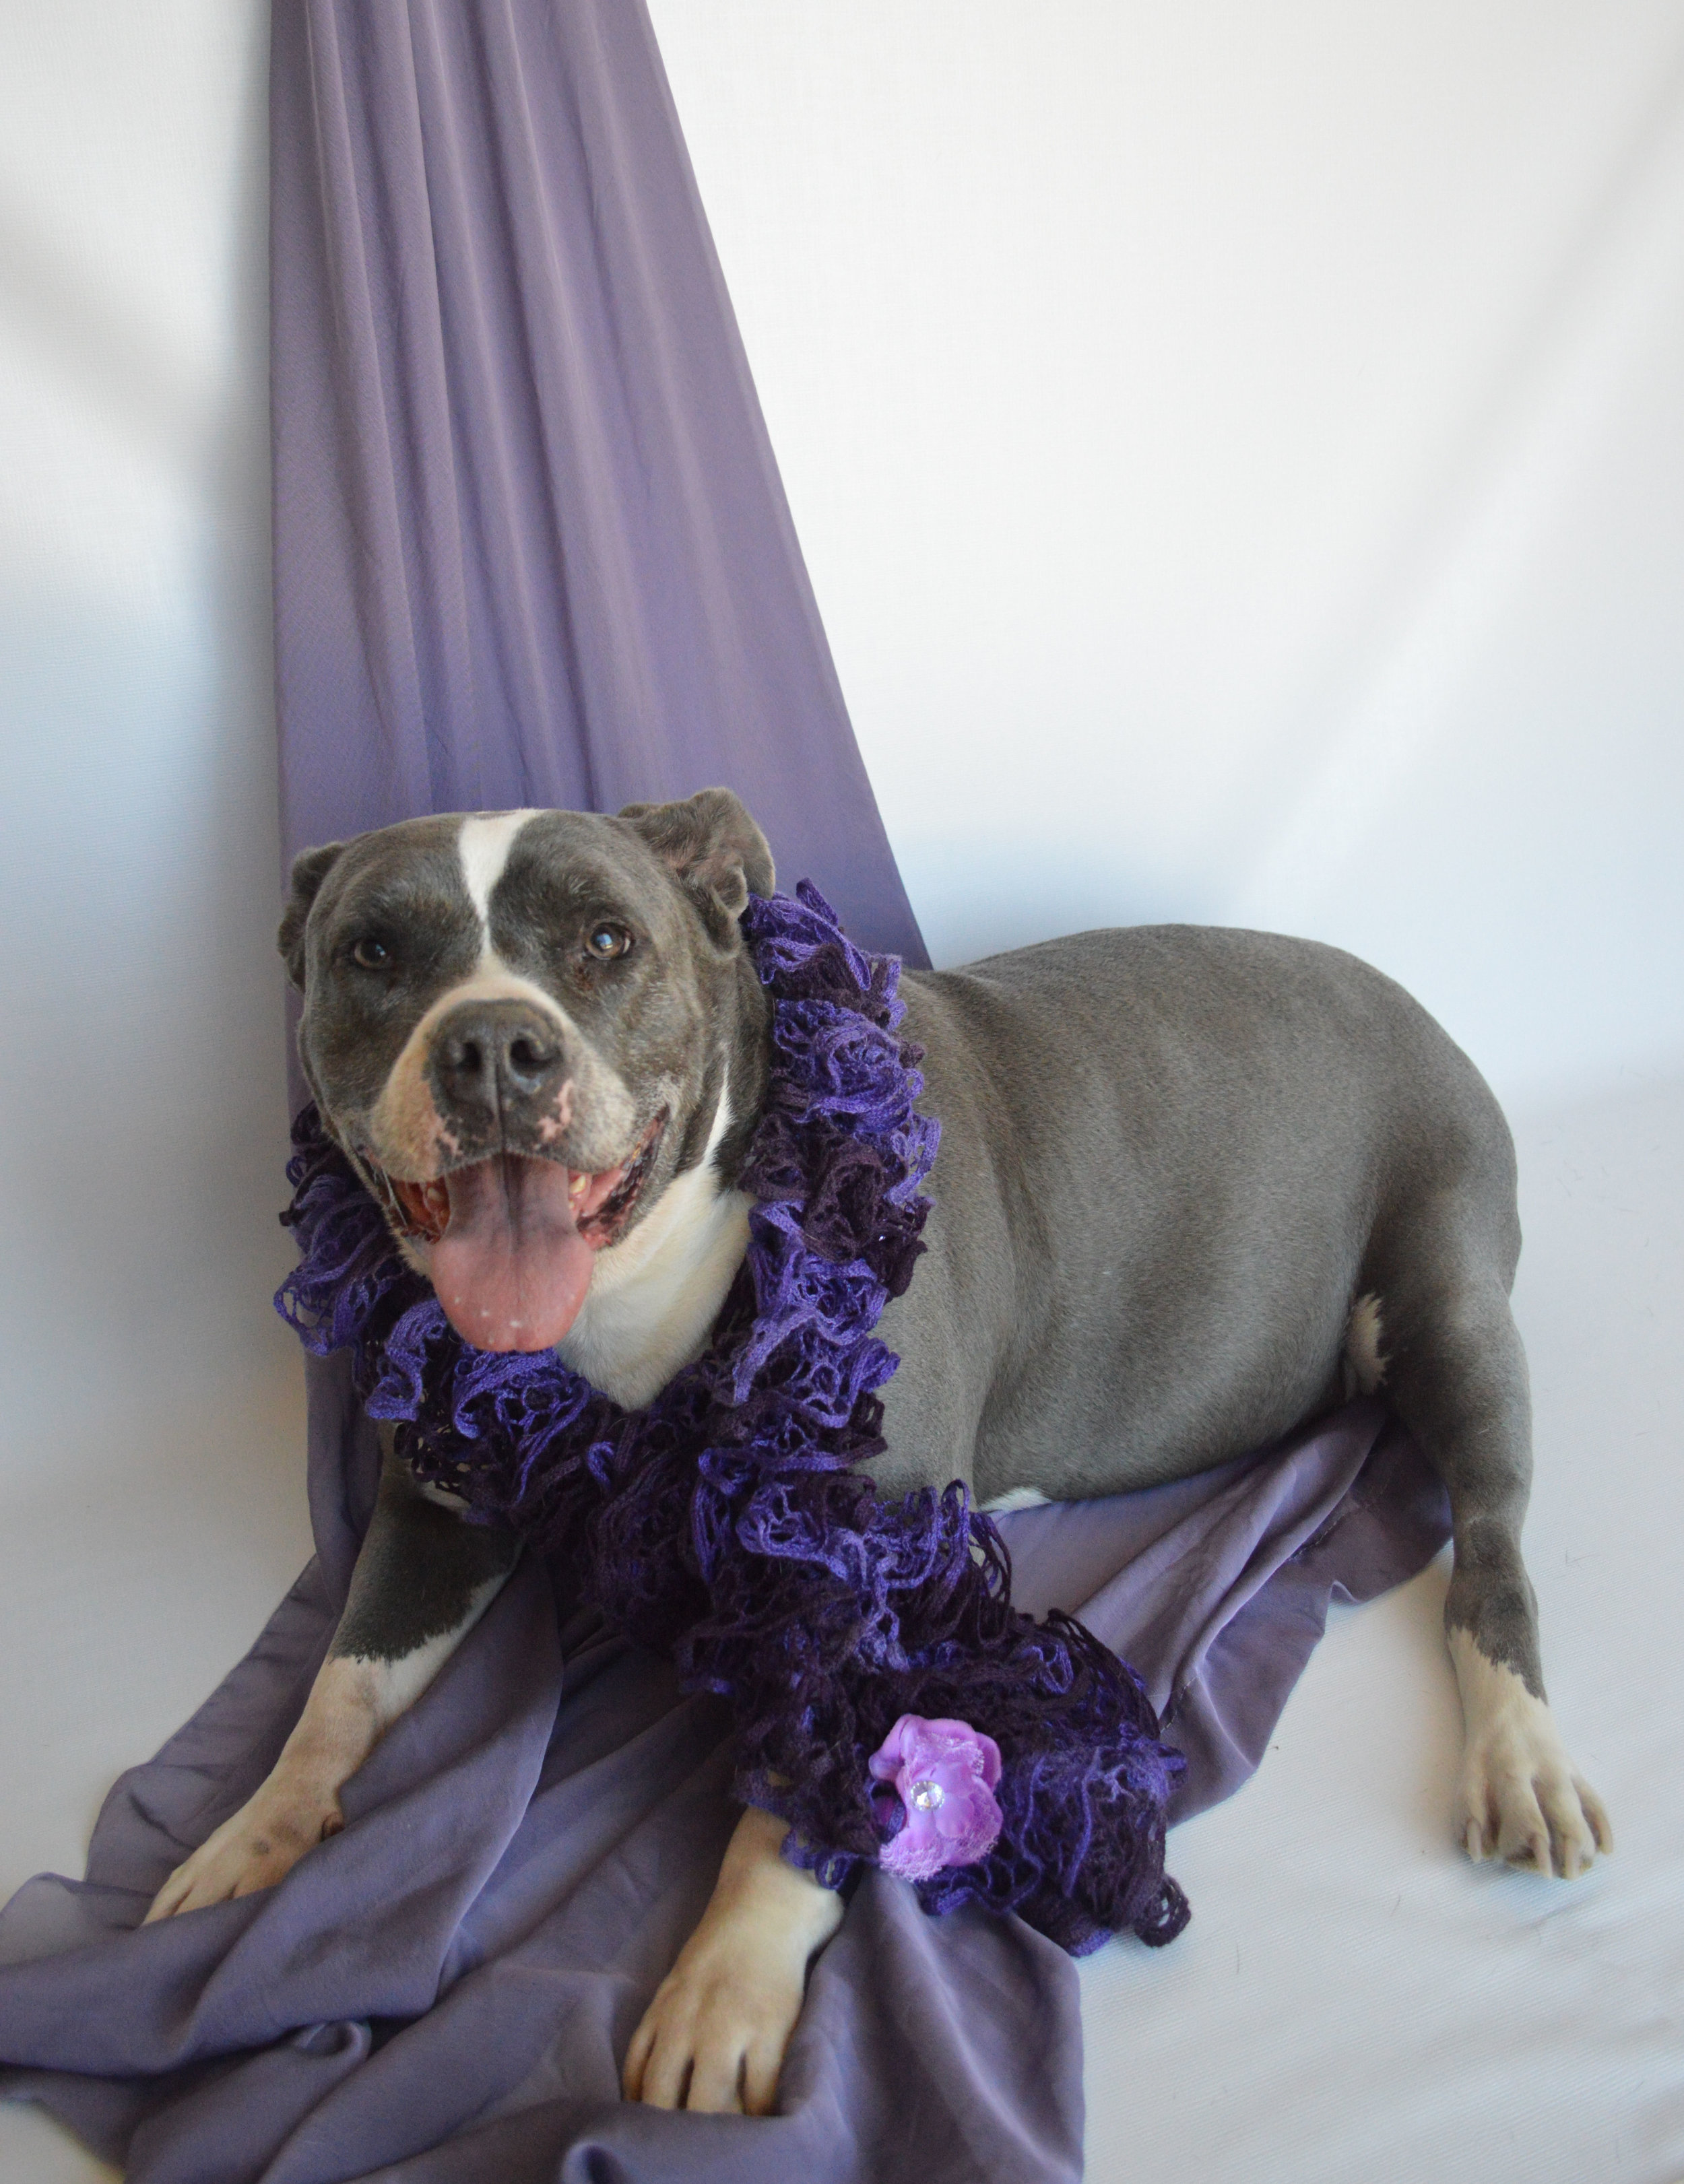 Marnie - Breed: DNA ~ tested1/2 American Staffs. Terrier1/4 Neapolitan Mastiff1/4 Bull MastiffDOB: 6-27-11Gender: femaleSize: large ~ 76 poundsColor: blue & whitePotty trained: yesCrate trained: yesWalks well on the leash: yesBasic commands: in trainingGood with kids: yesDogs: yesCats: noStatus: availableAdoption fee: $ 175